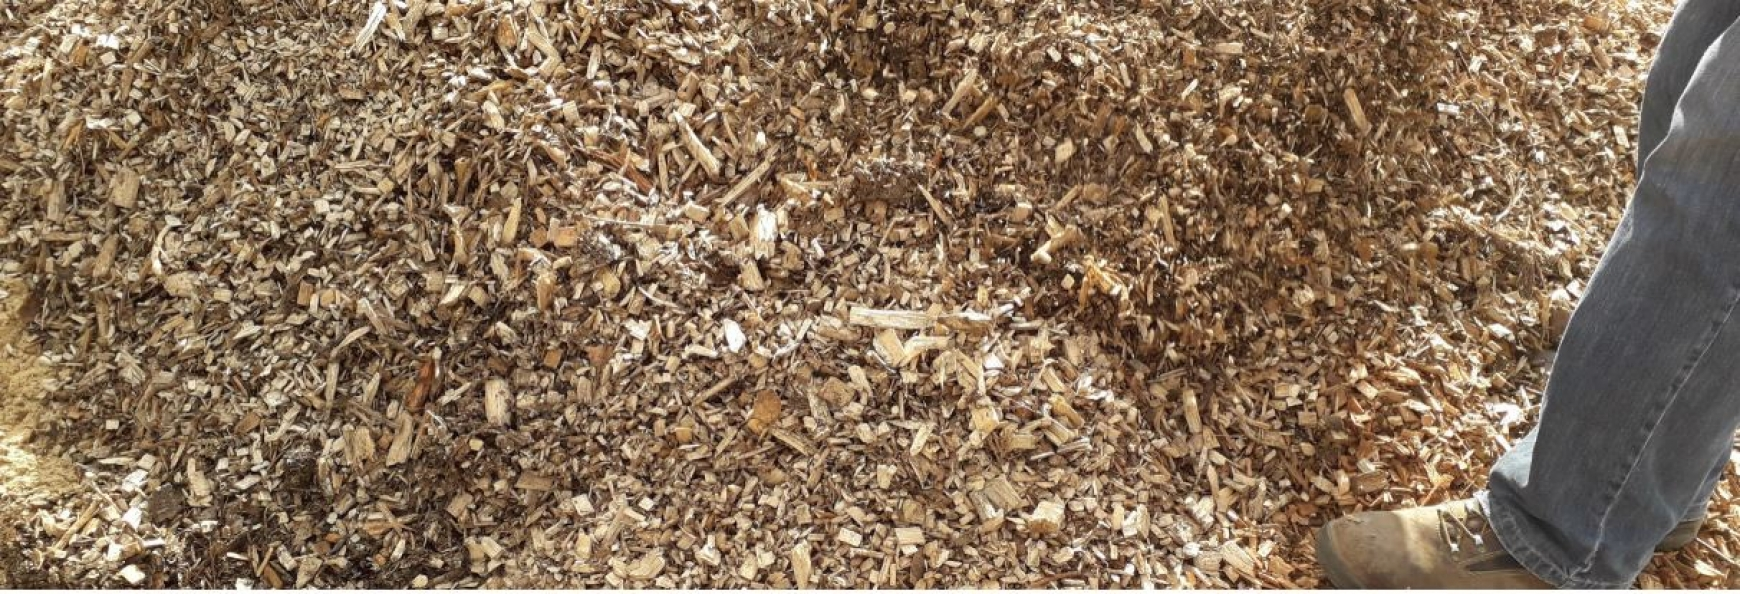 A close up on a pile of wood chip